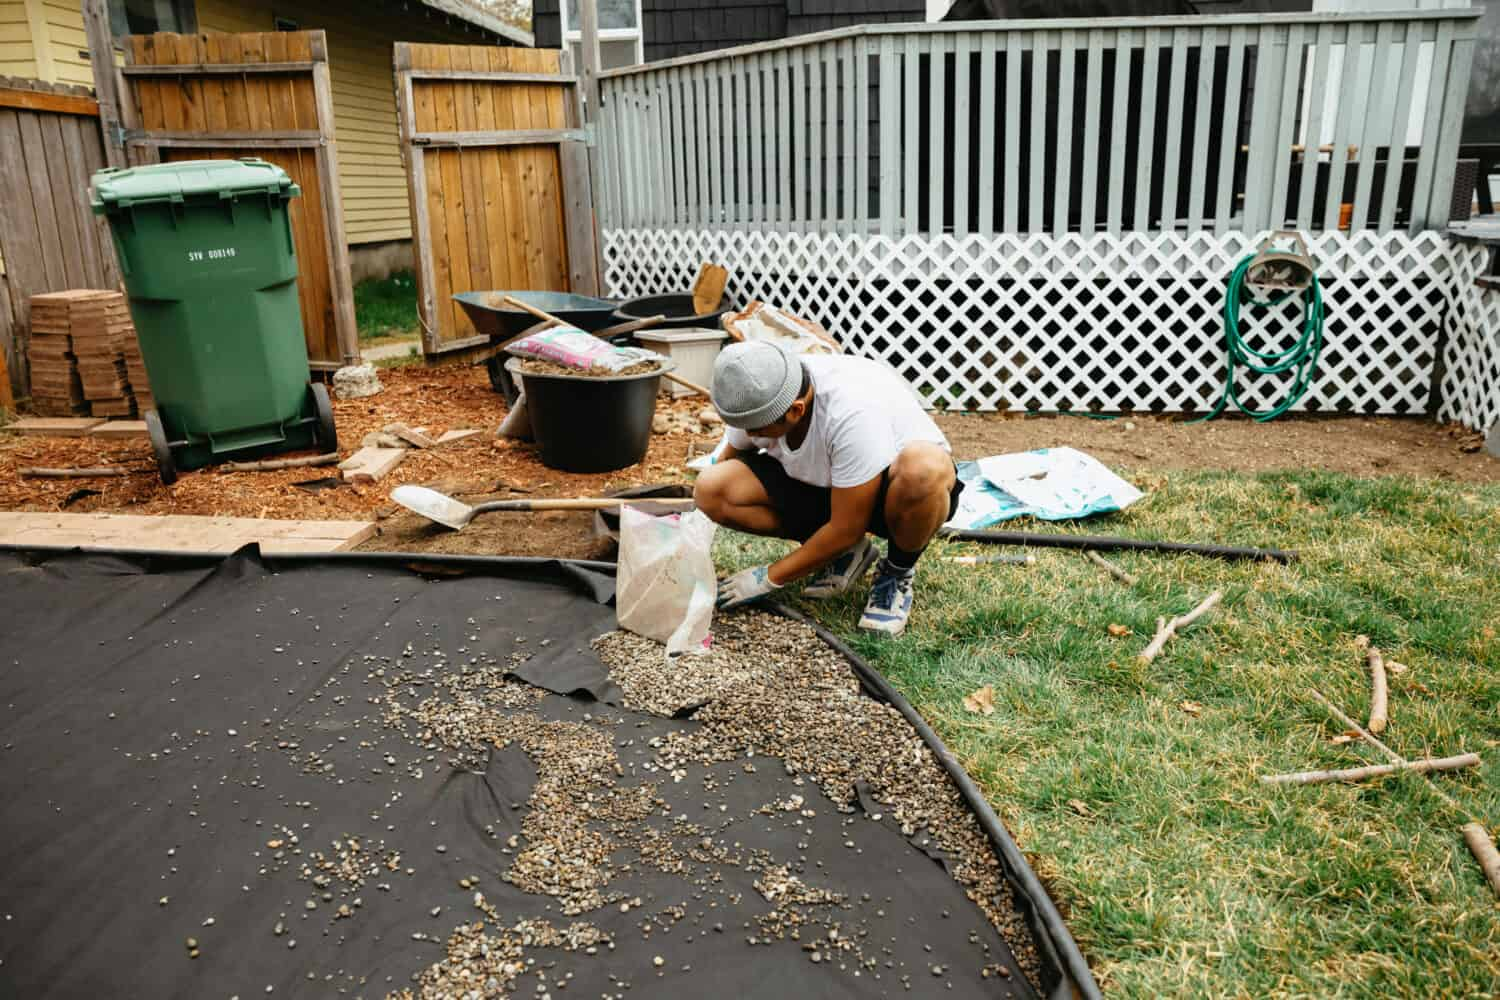 Spreading pea gravel into the backyard fire pit area - themandagies.com